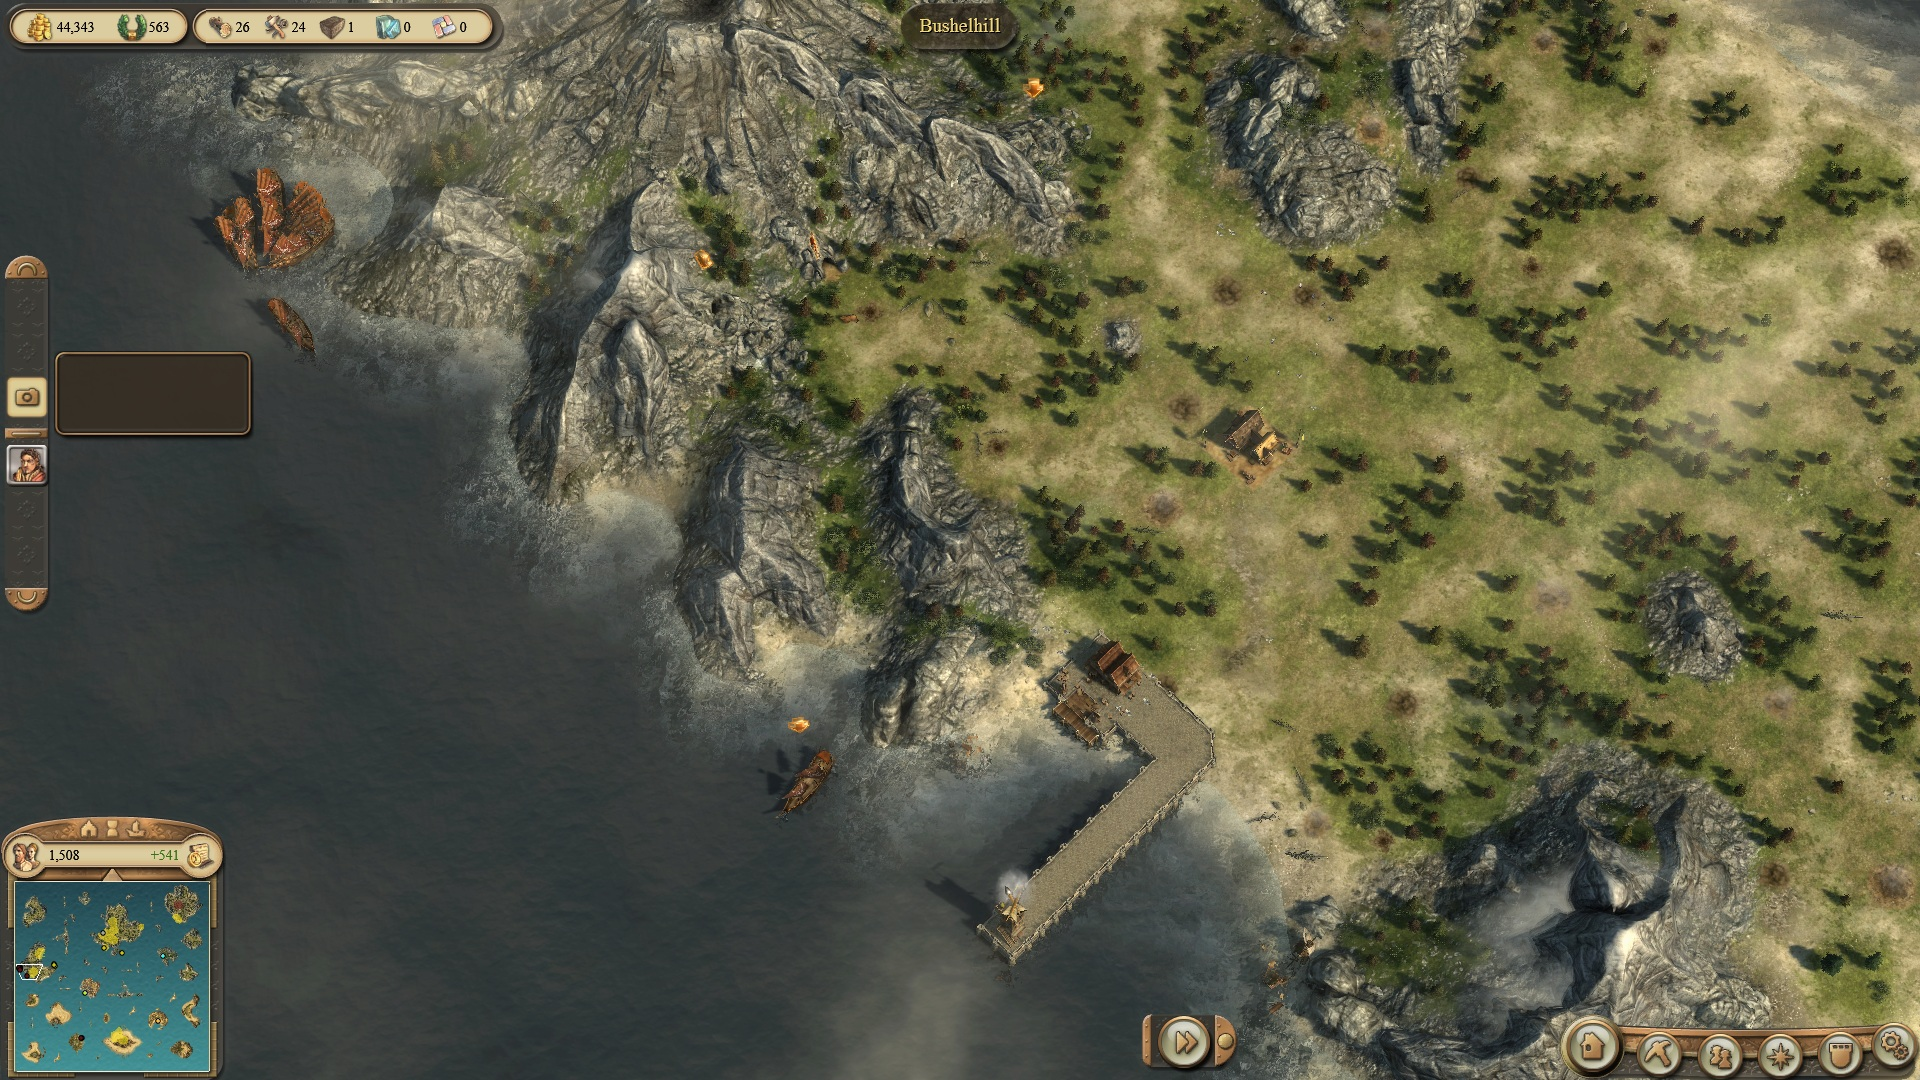 Scenarios anno 1404 wiki fandom powered by wikia gumiabroncs Image collections